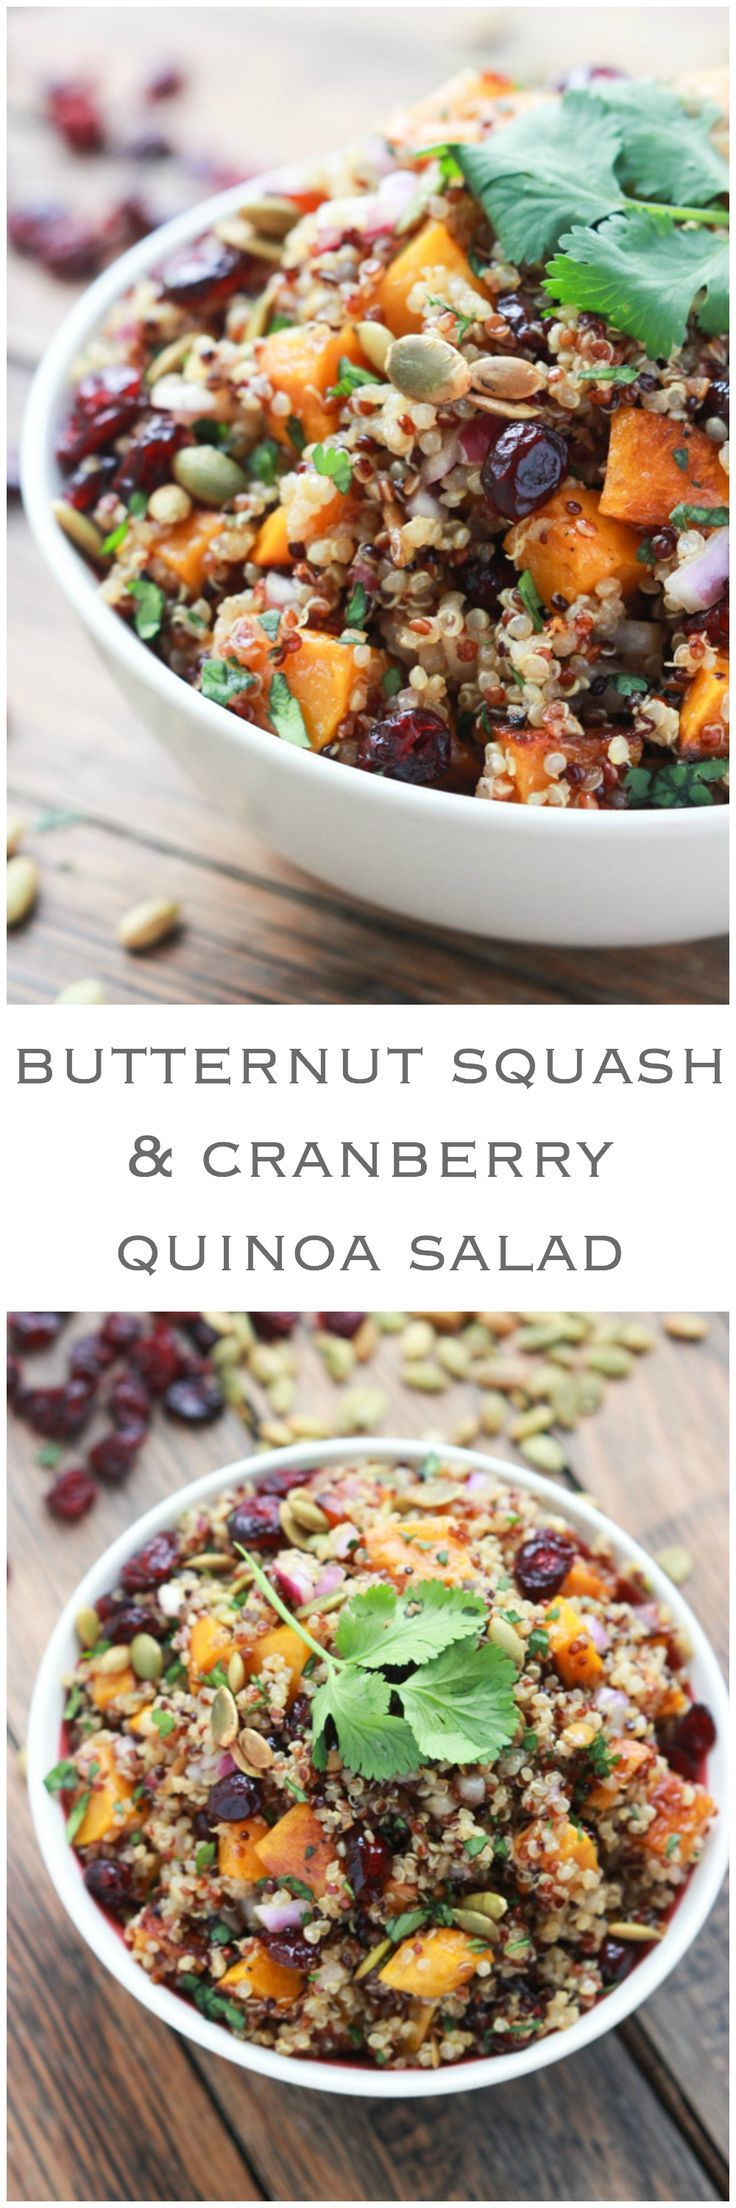 Butternut Squash and Cranberry Quinoa Salad - healthy fall salad with delicious and clean ingredients | http://littlebroken.com /littlebroken/